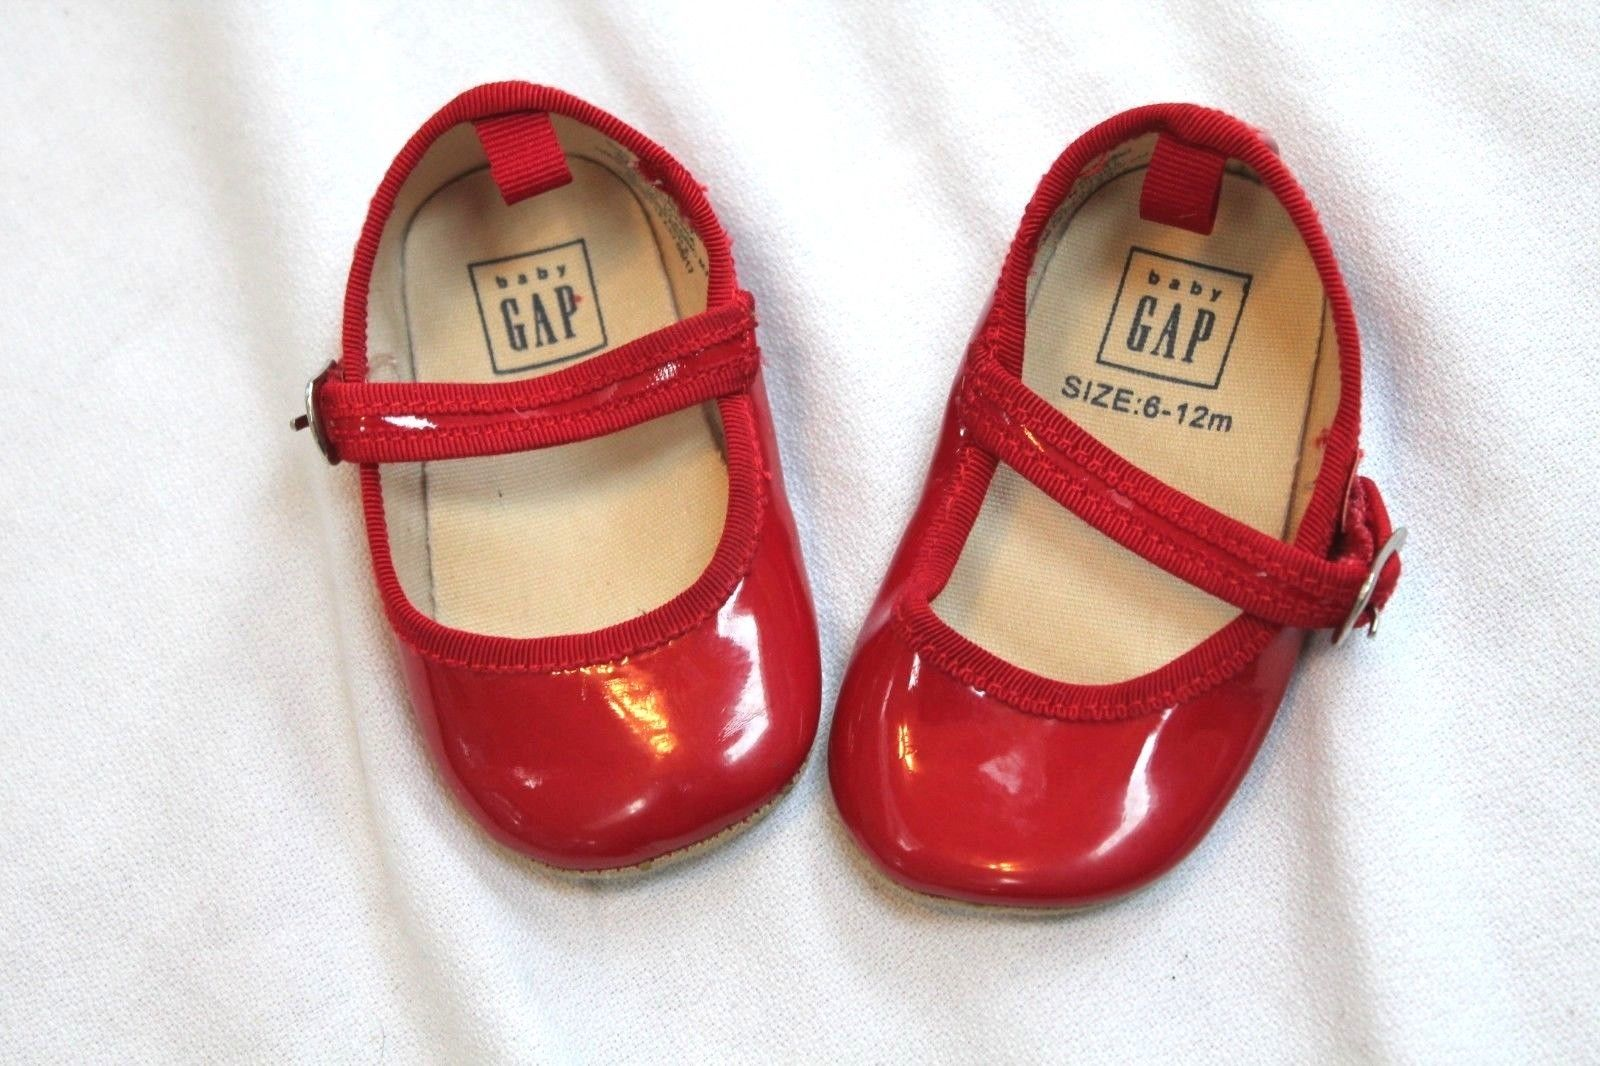 GAP Baby Girl Size 3-6 Months Light Pink Patent Leather Mary Jane Flats Shoes